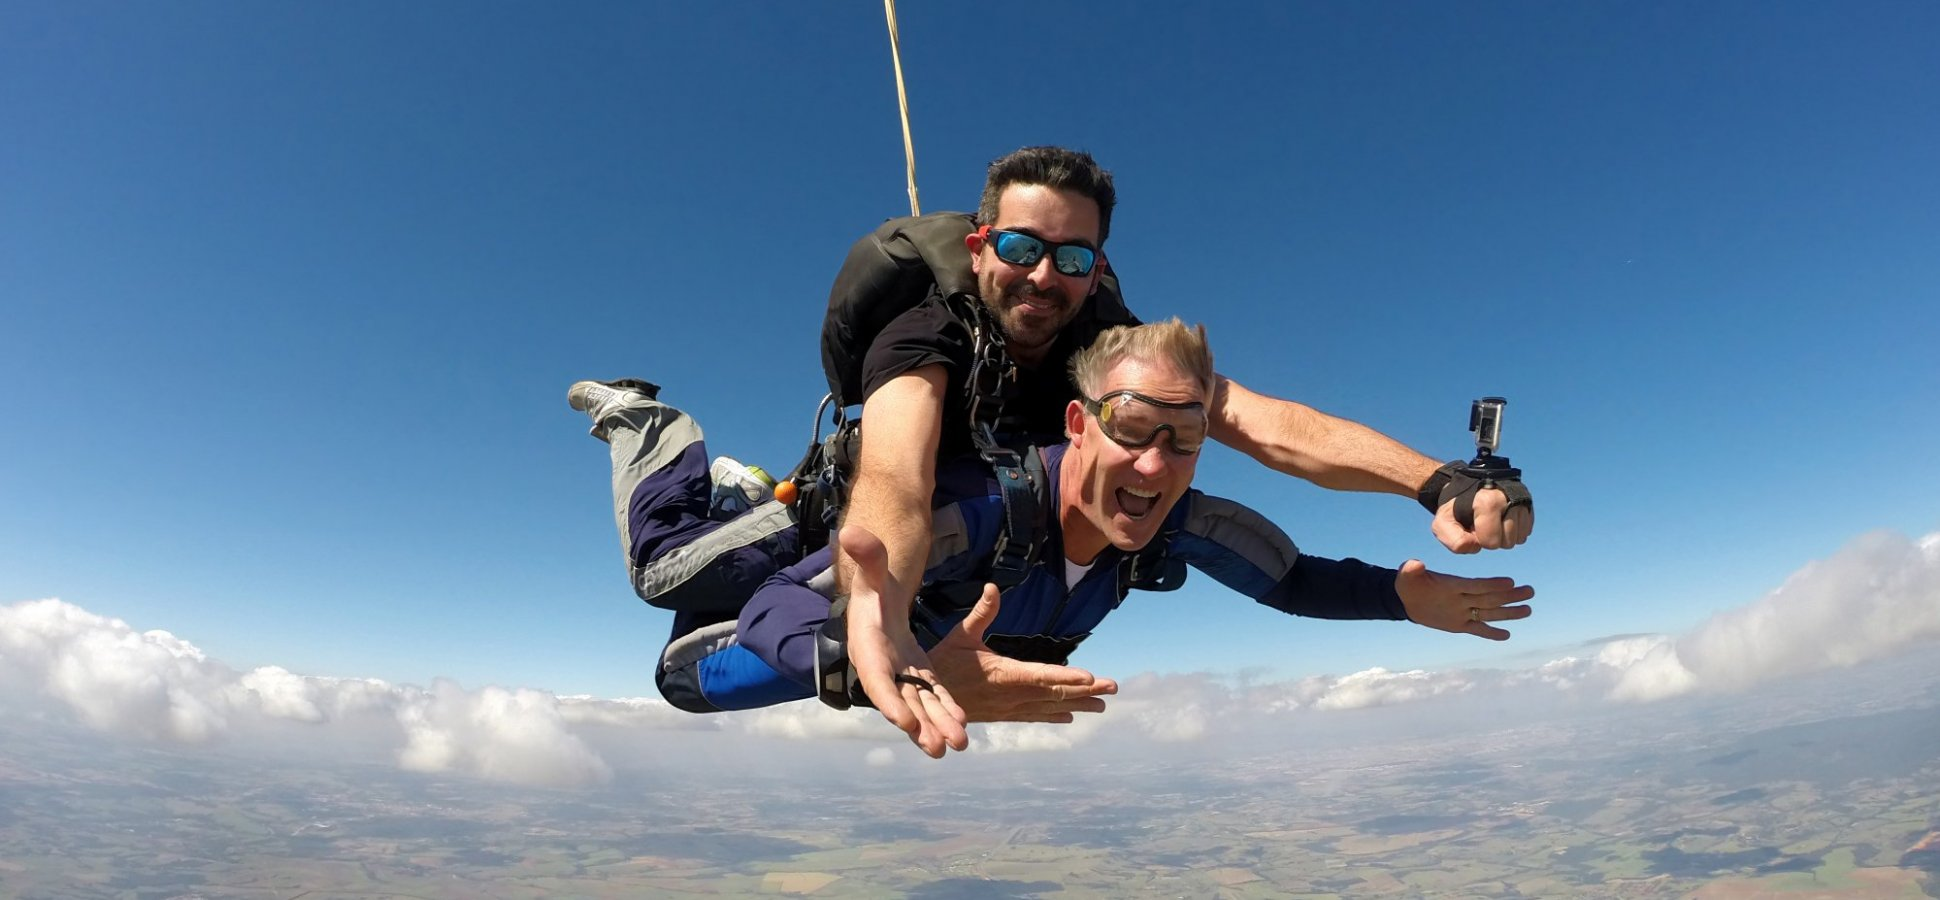 The Entrepreneur and Adventure Junkie Shares How to Determine When the Risk Is Worth the Reward